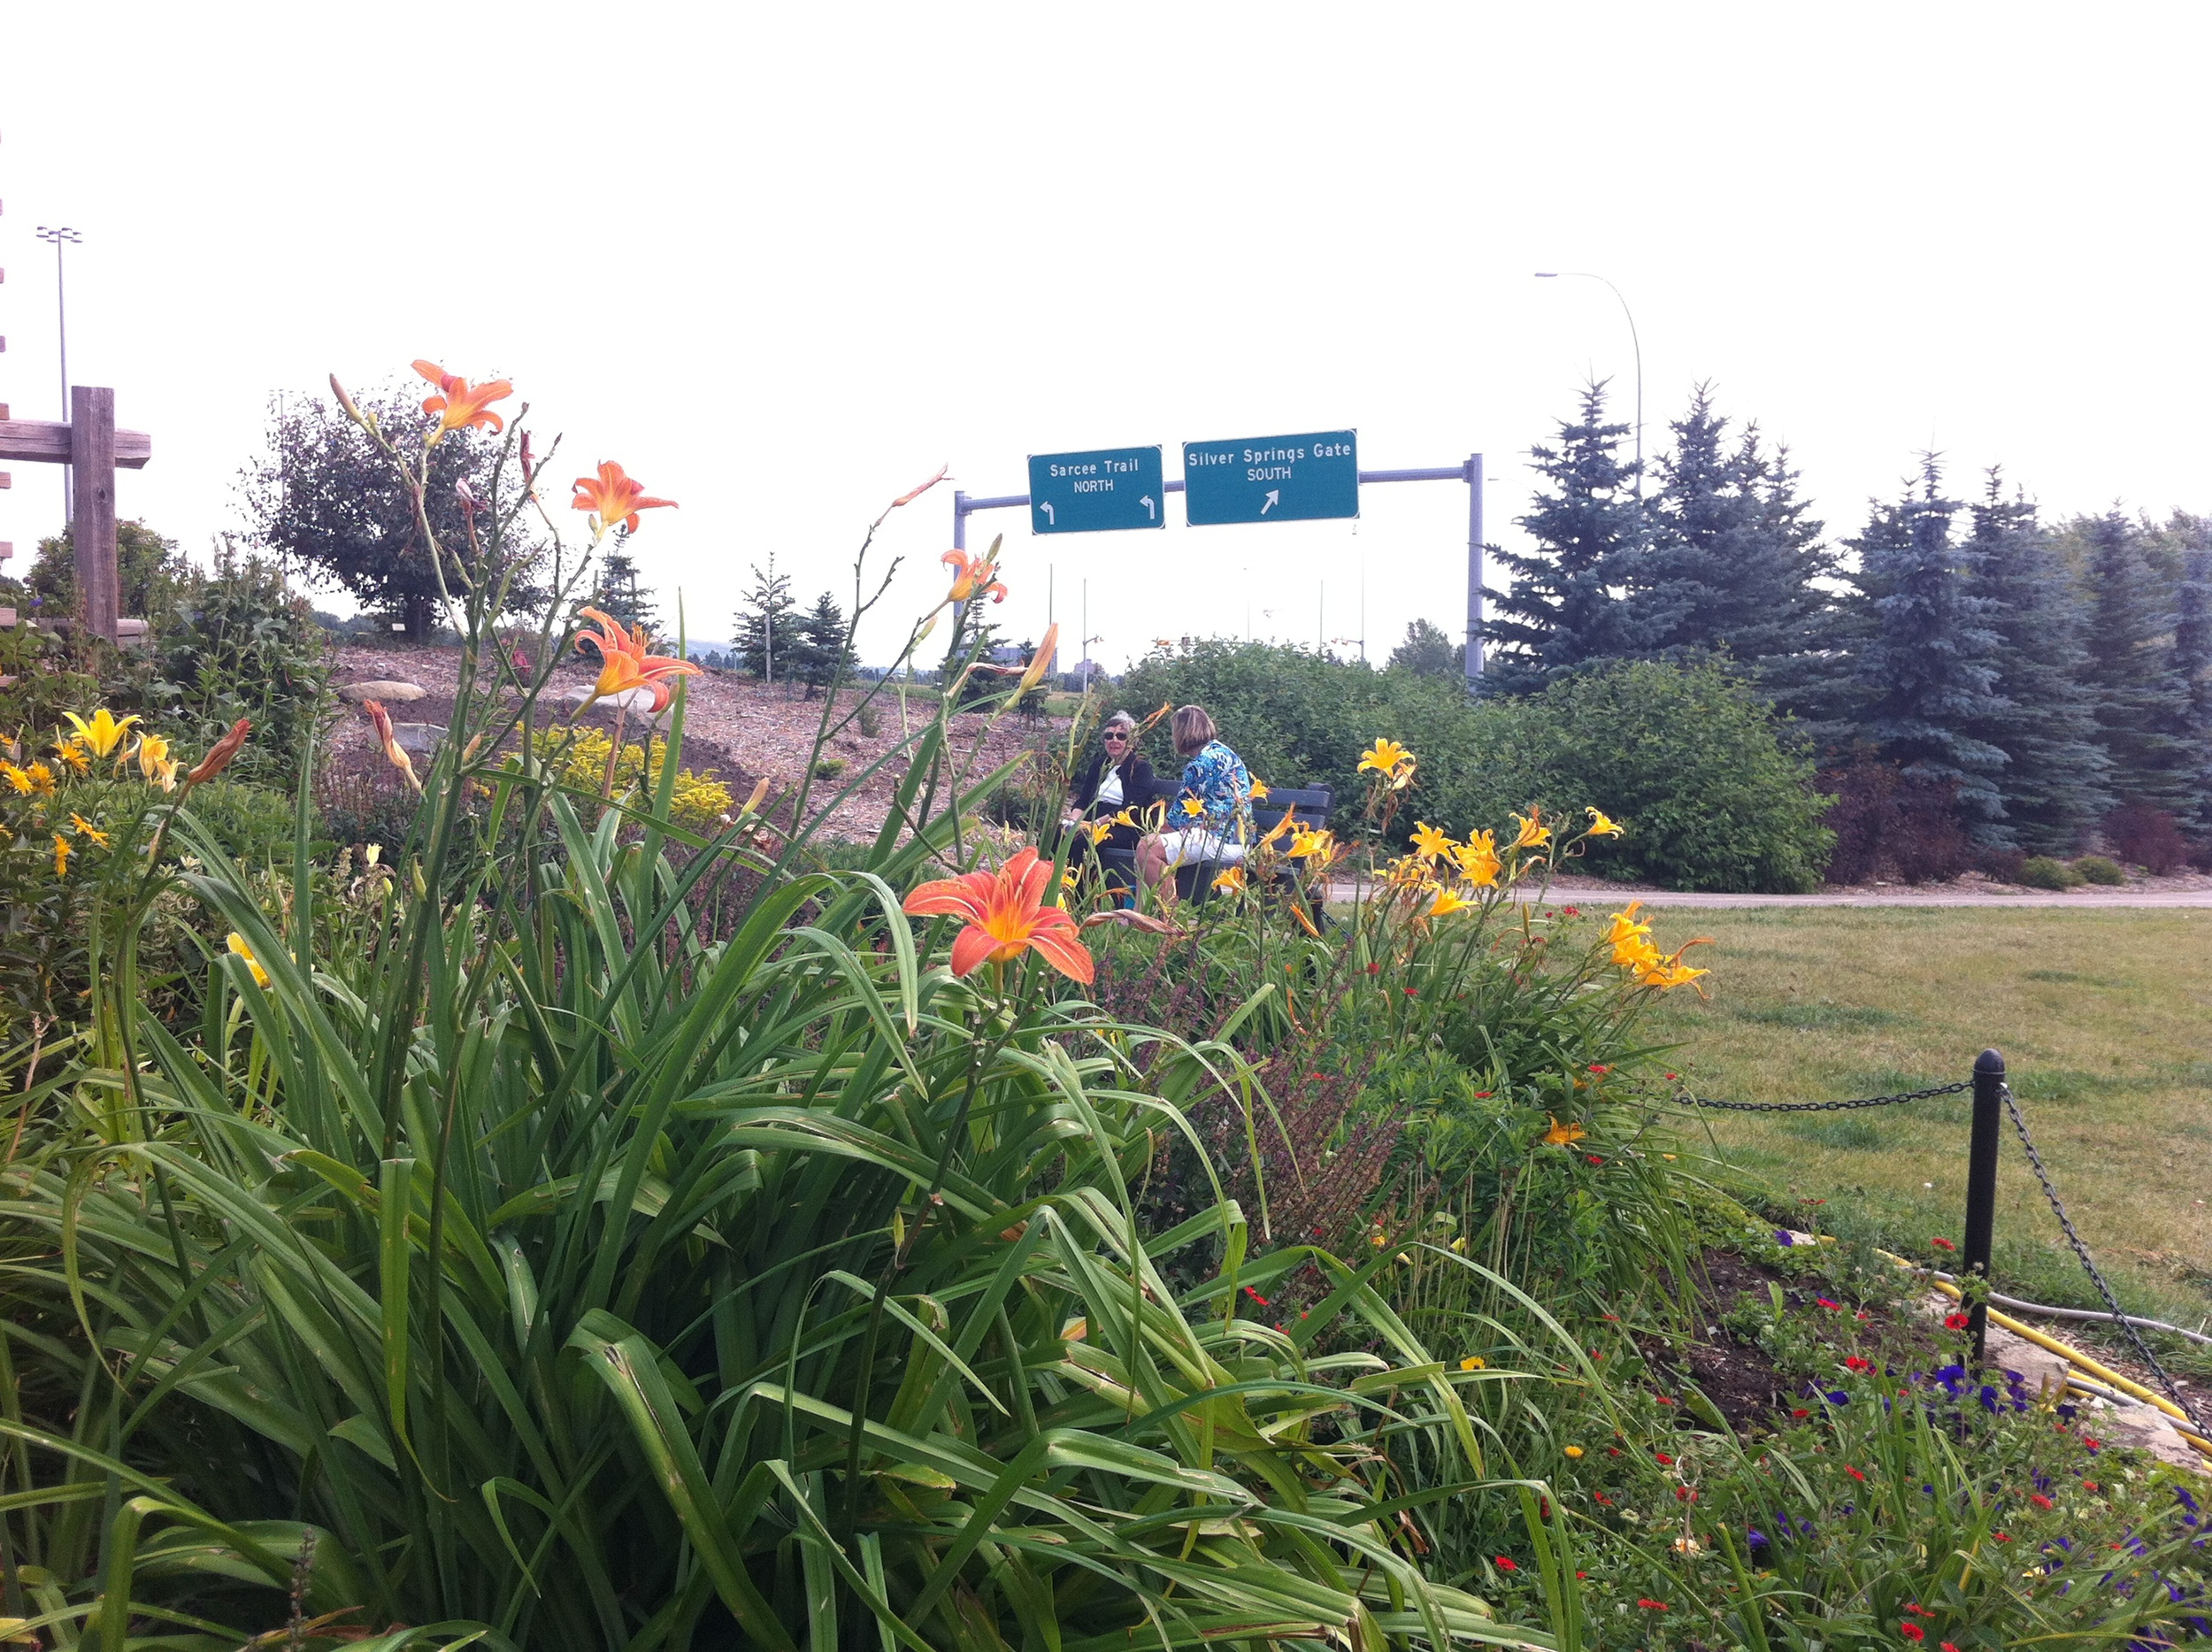 Yes, the Silver Springs Botanical Garden is literally just off Crowchild Trail.